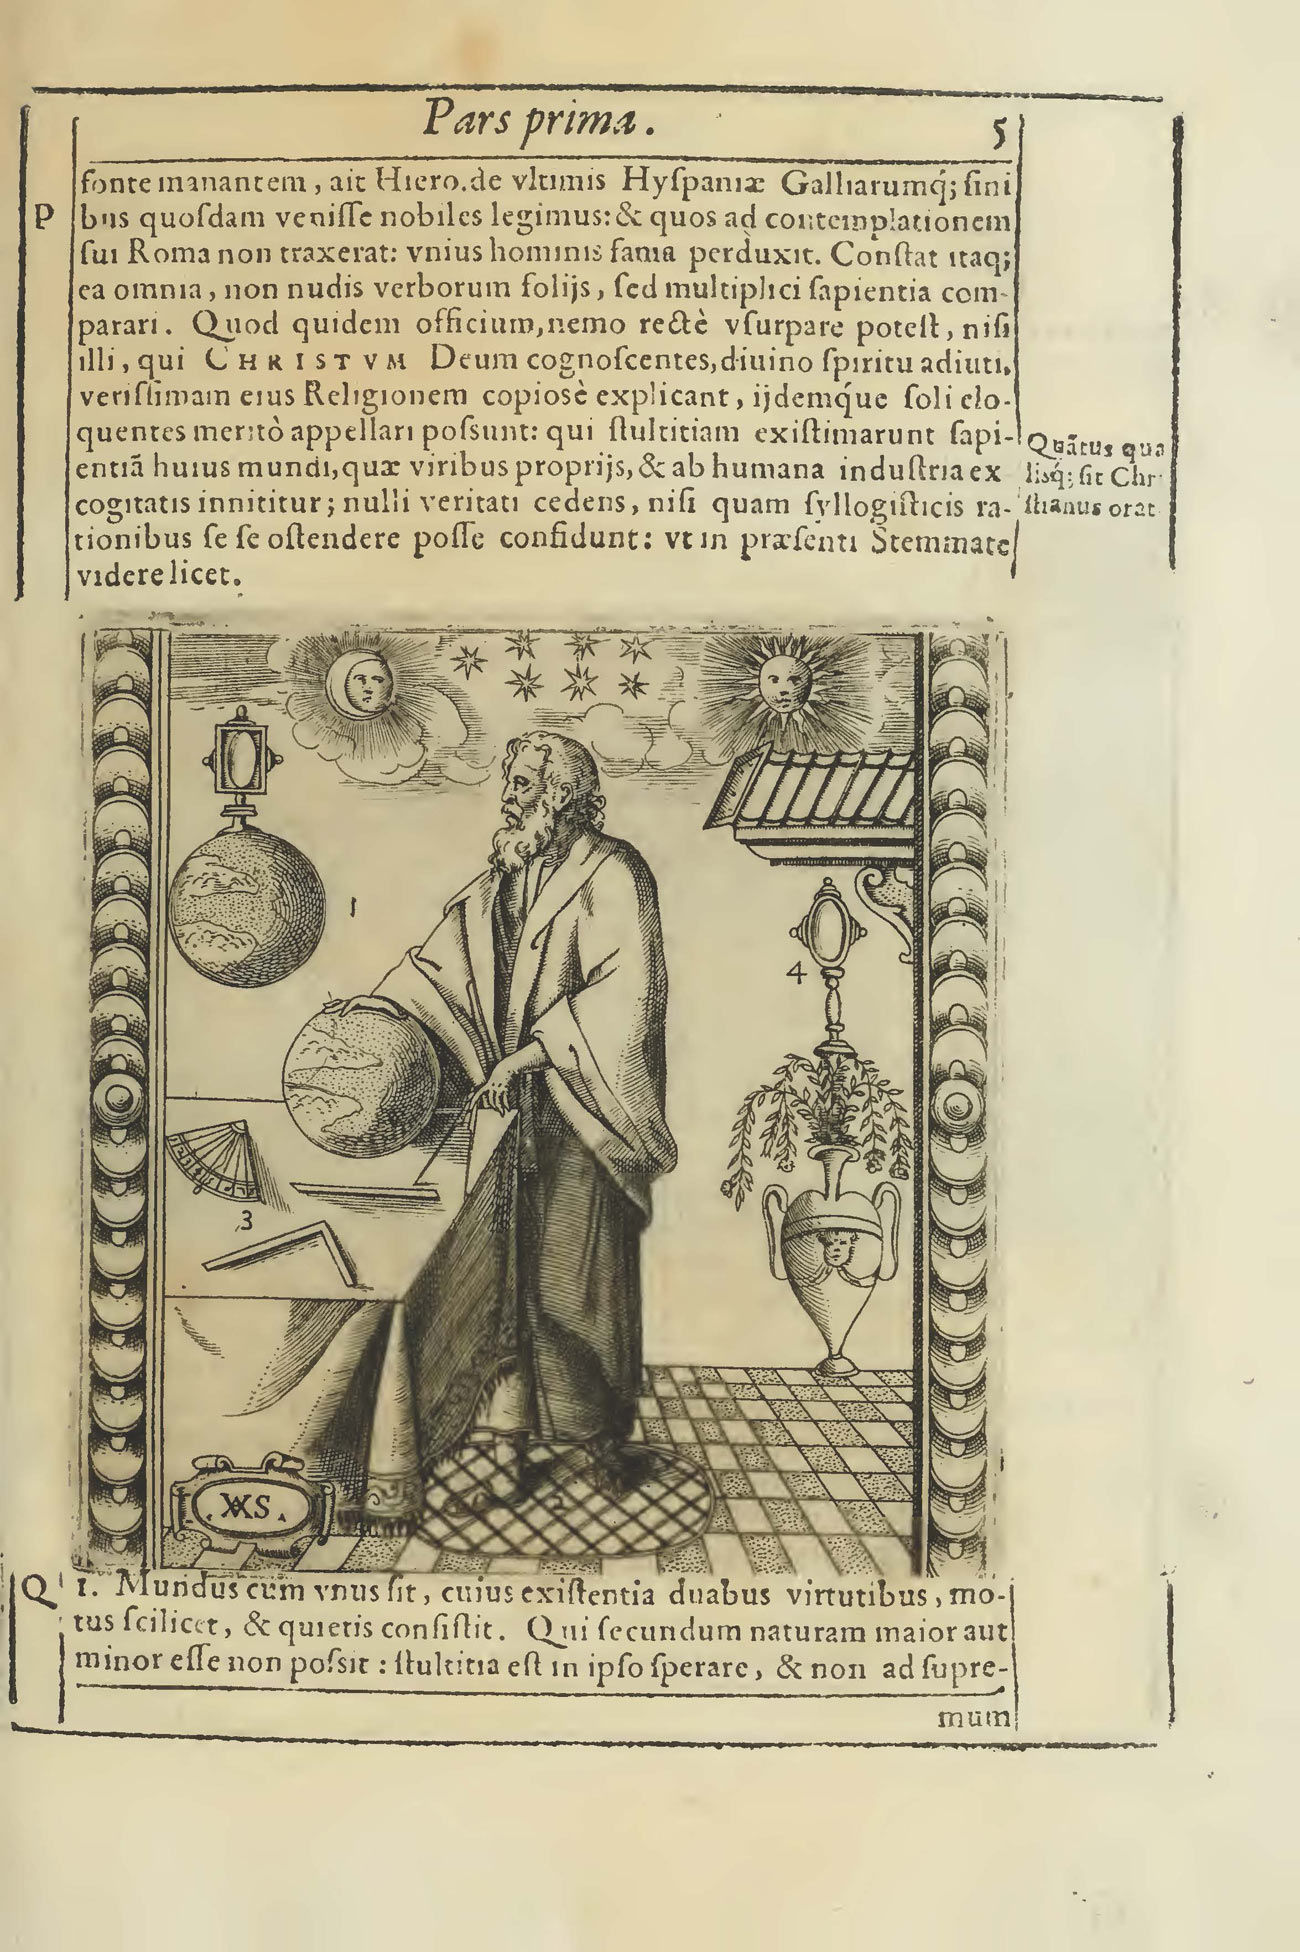 Image on a book page of a bearded, robed man standing at a table with a globe